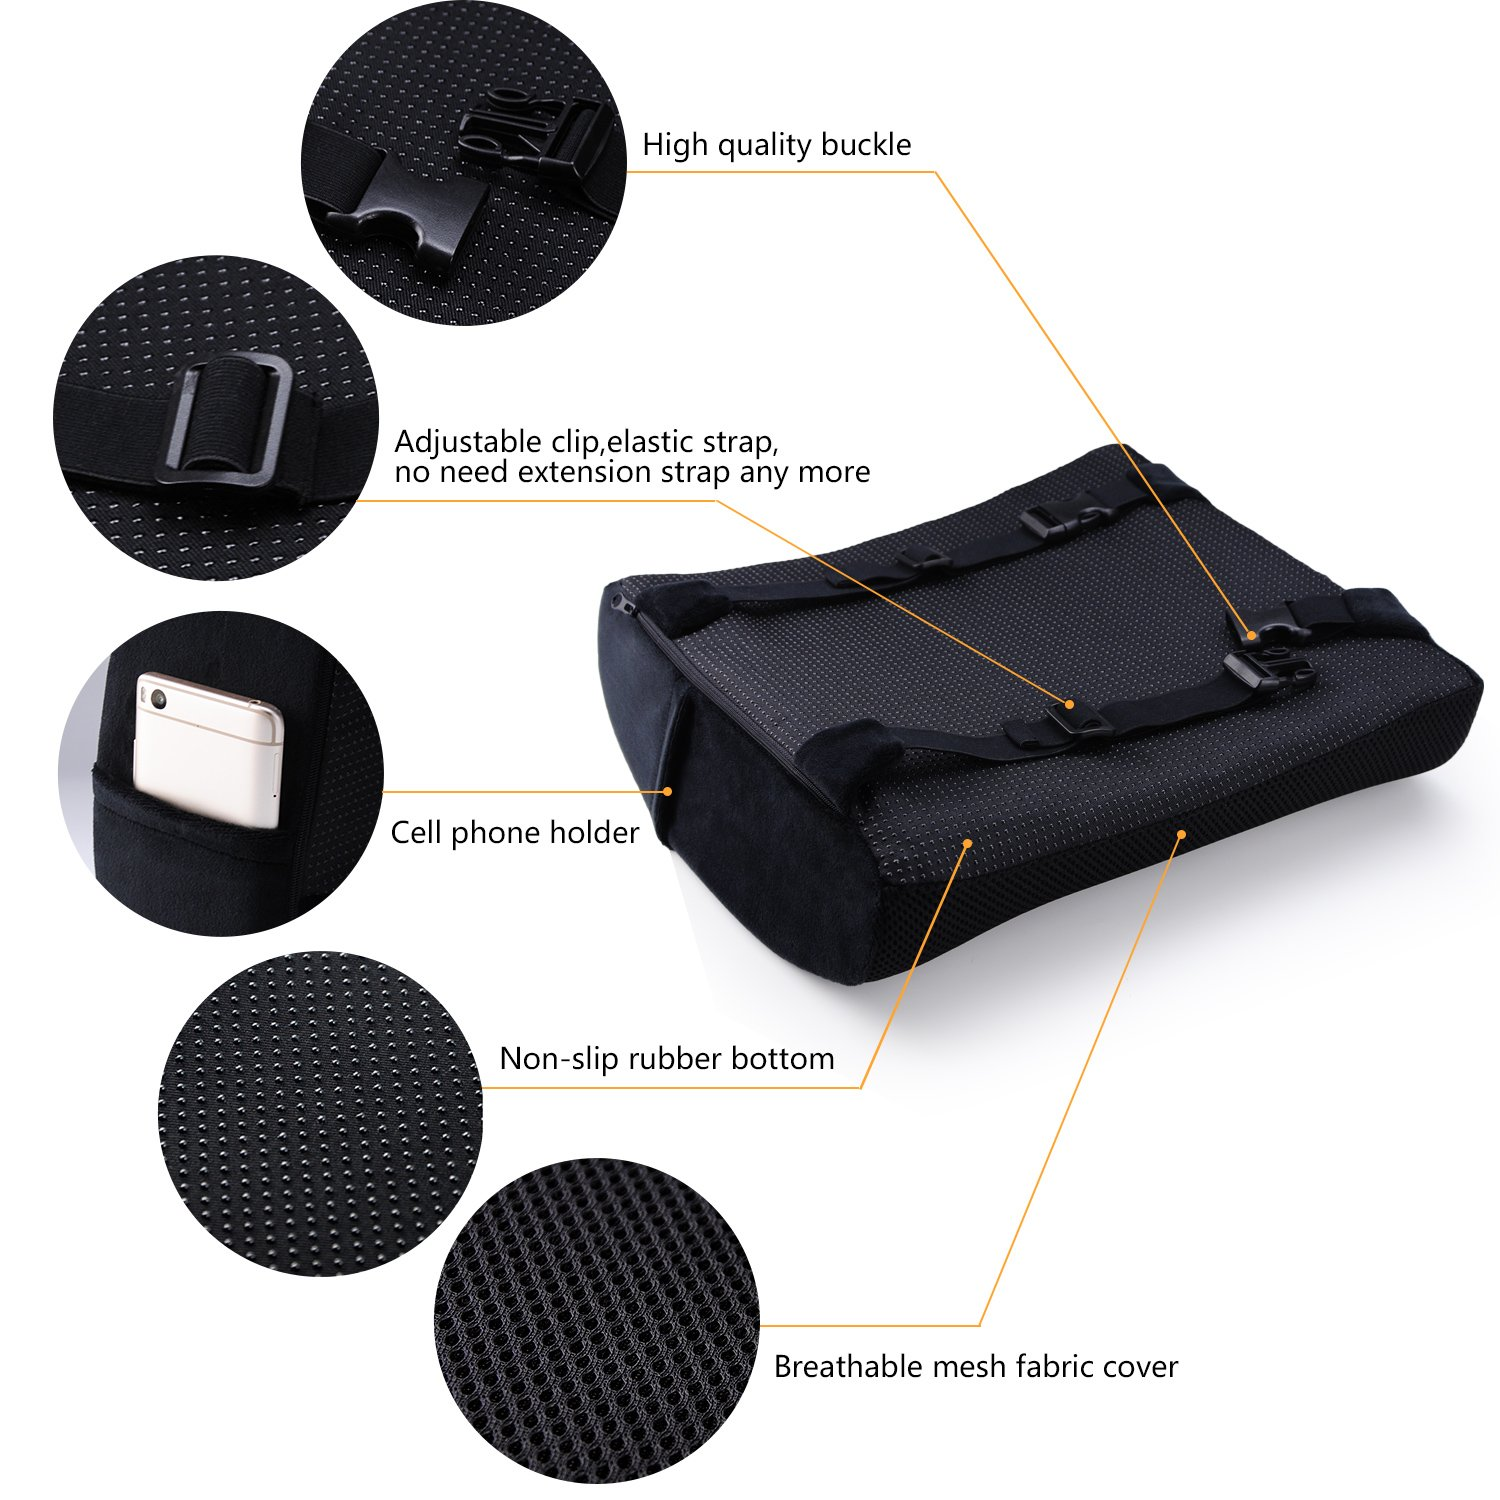 Dreamer Car High Density Memory Foam Back Cushion, Non-slip Orthopedic Lumbar Support Pillow for Low Back Pain Relief, 2 Adjustable Straps for Office Chair, Black